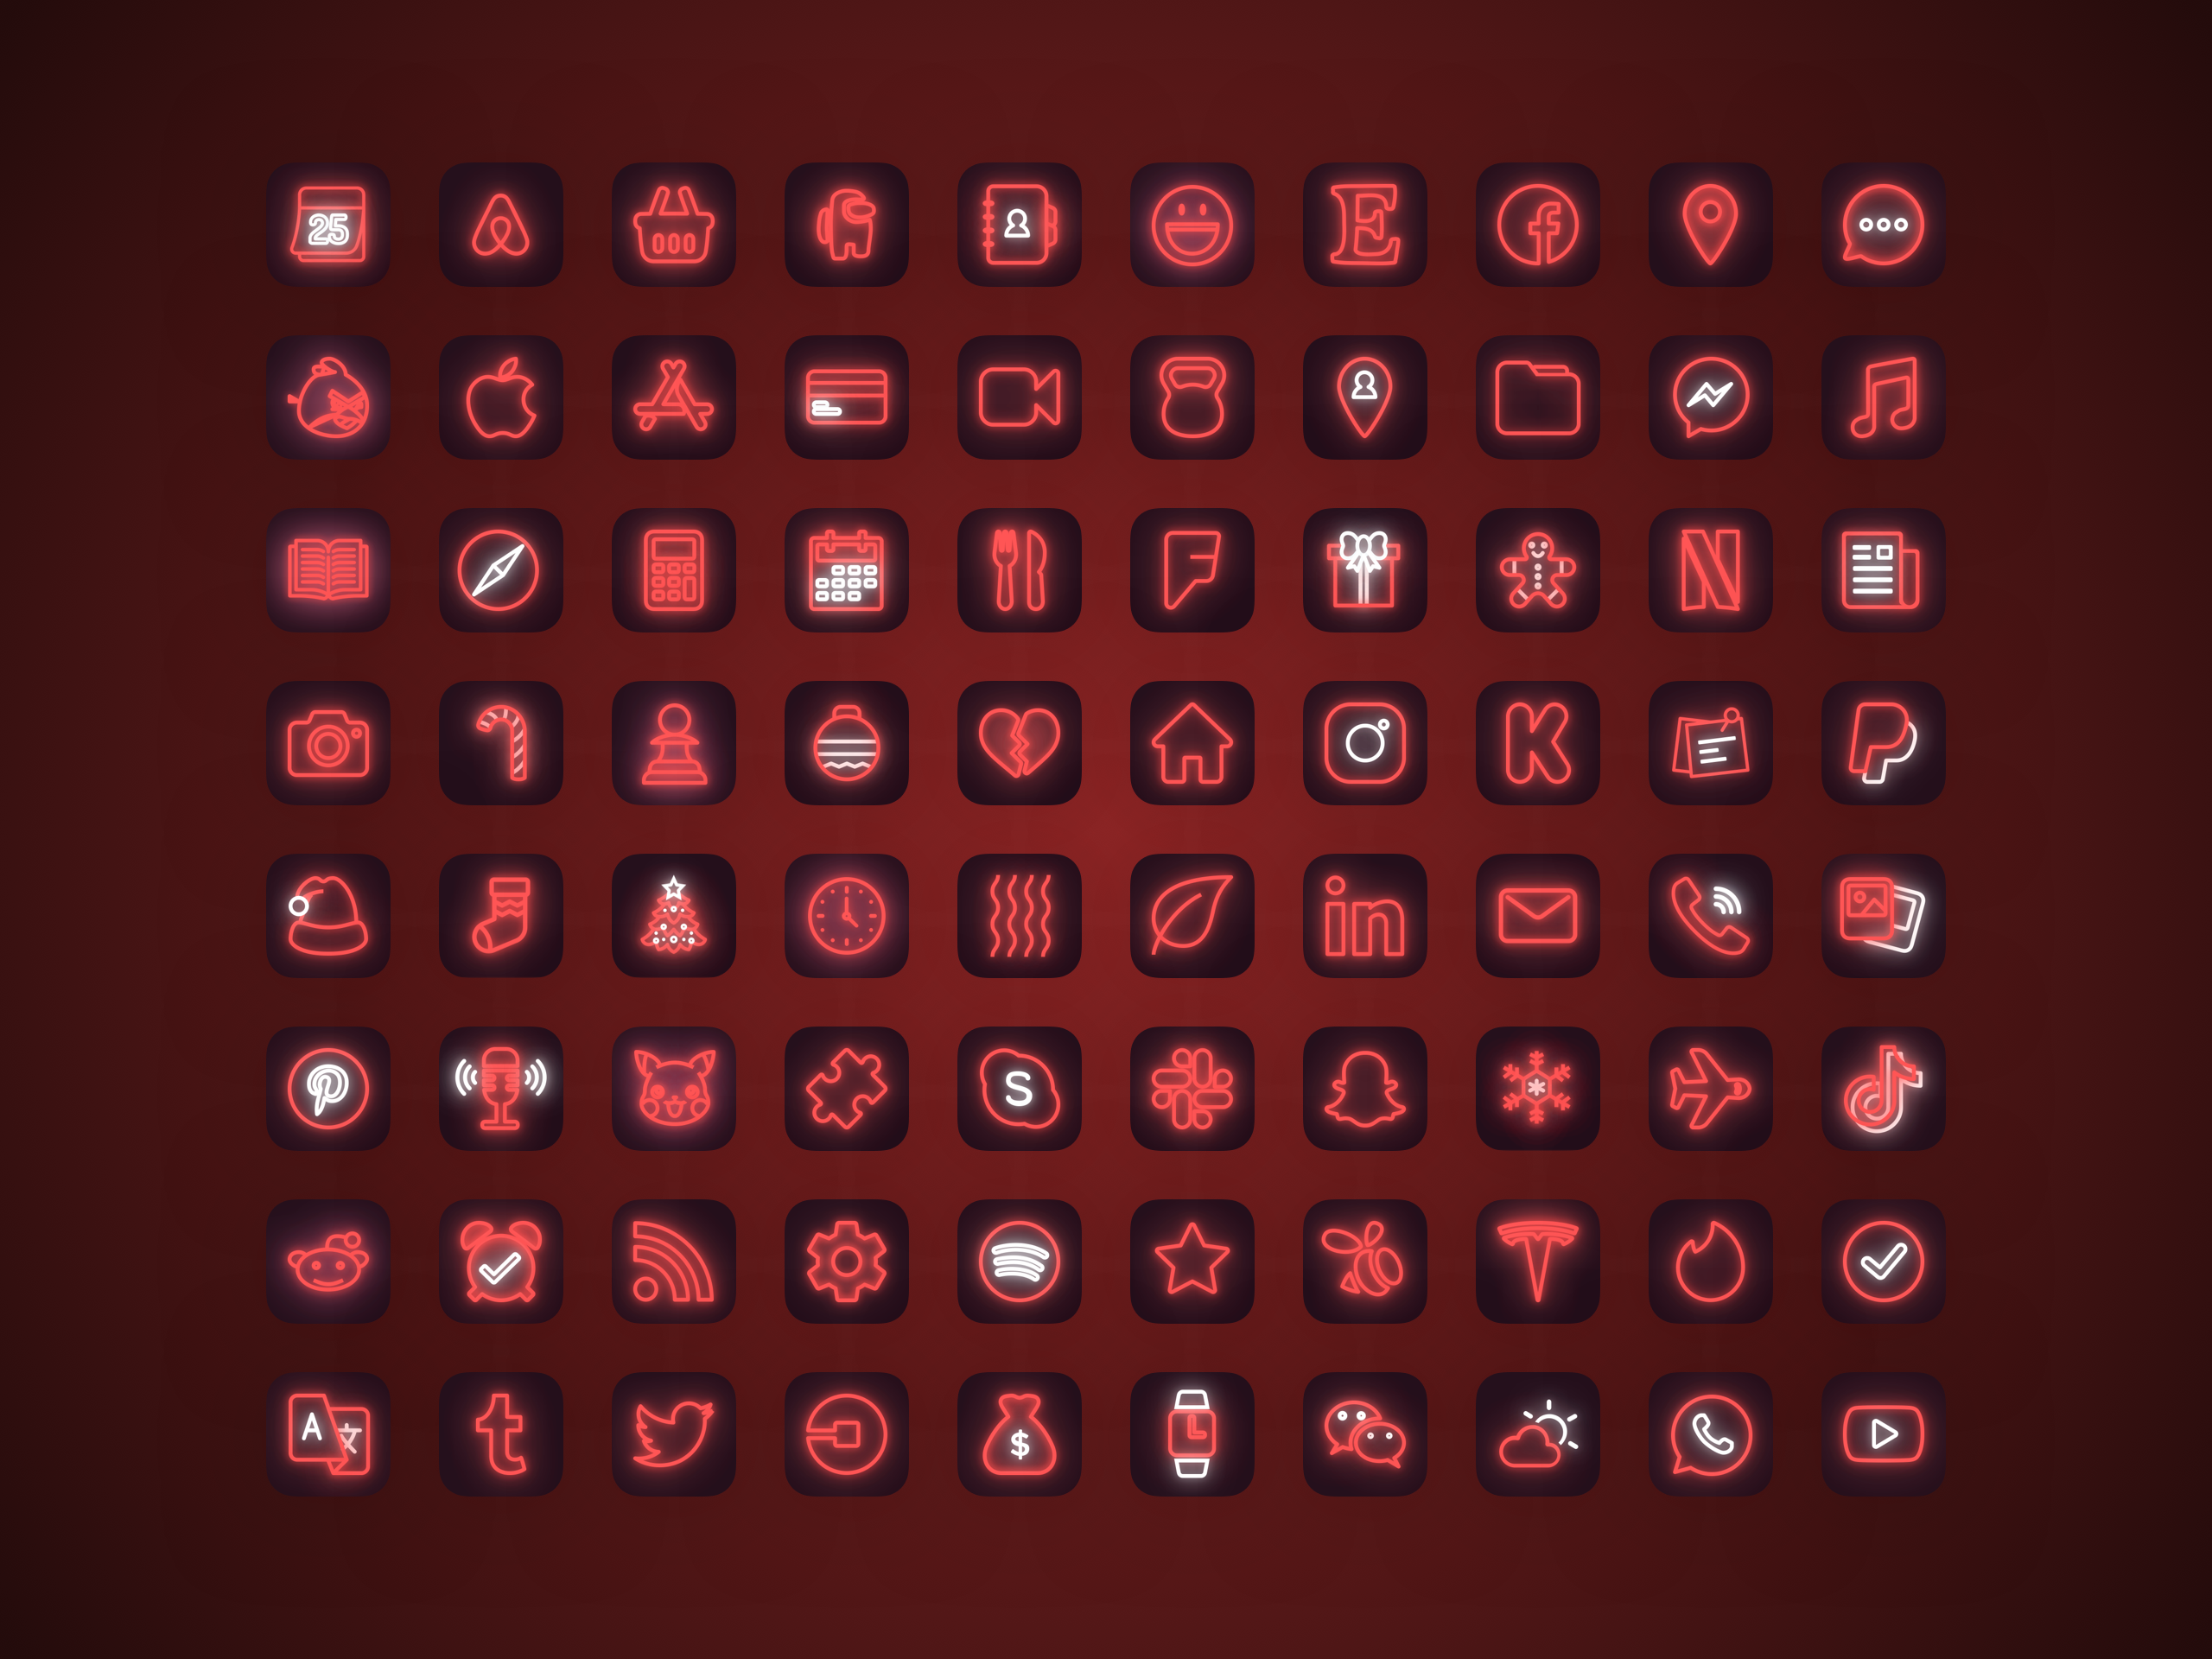 12010 Red Neon Ios 14 App Icons Christmas Aesthetic For Etsy In 2021 App Icon Homescreen Iphone Wallpaper App